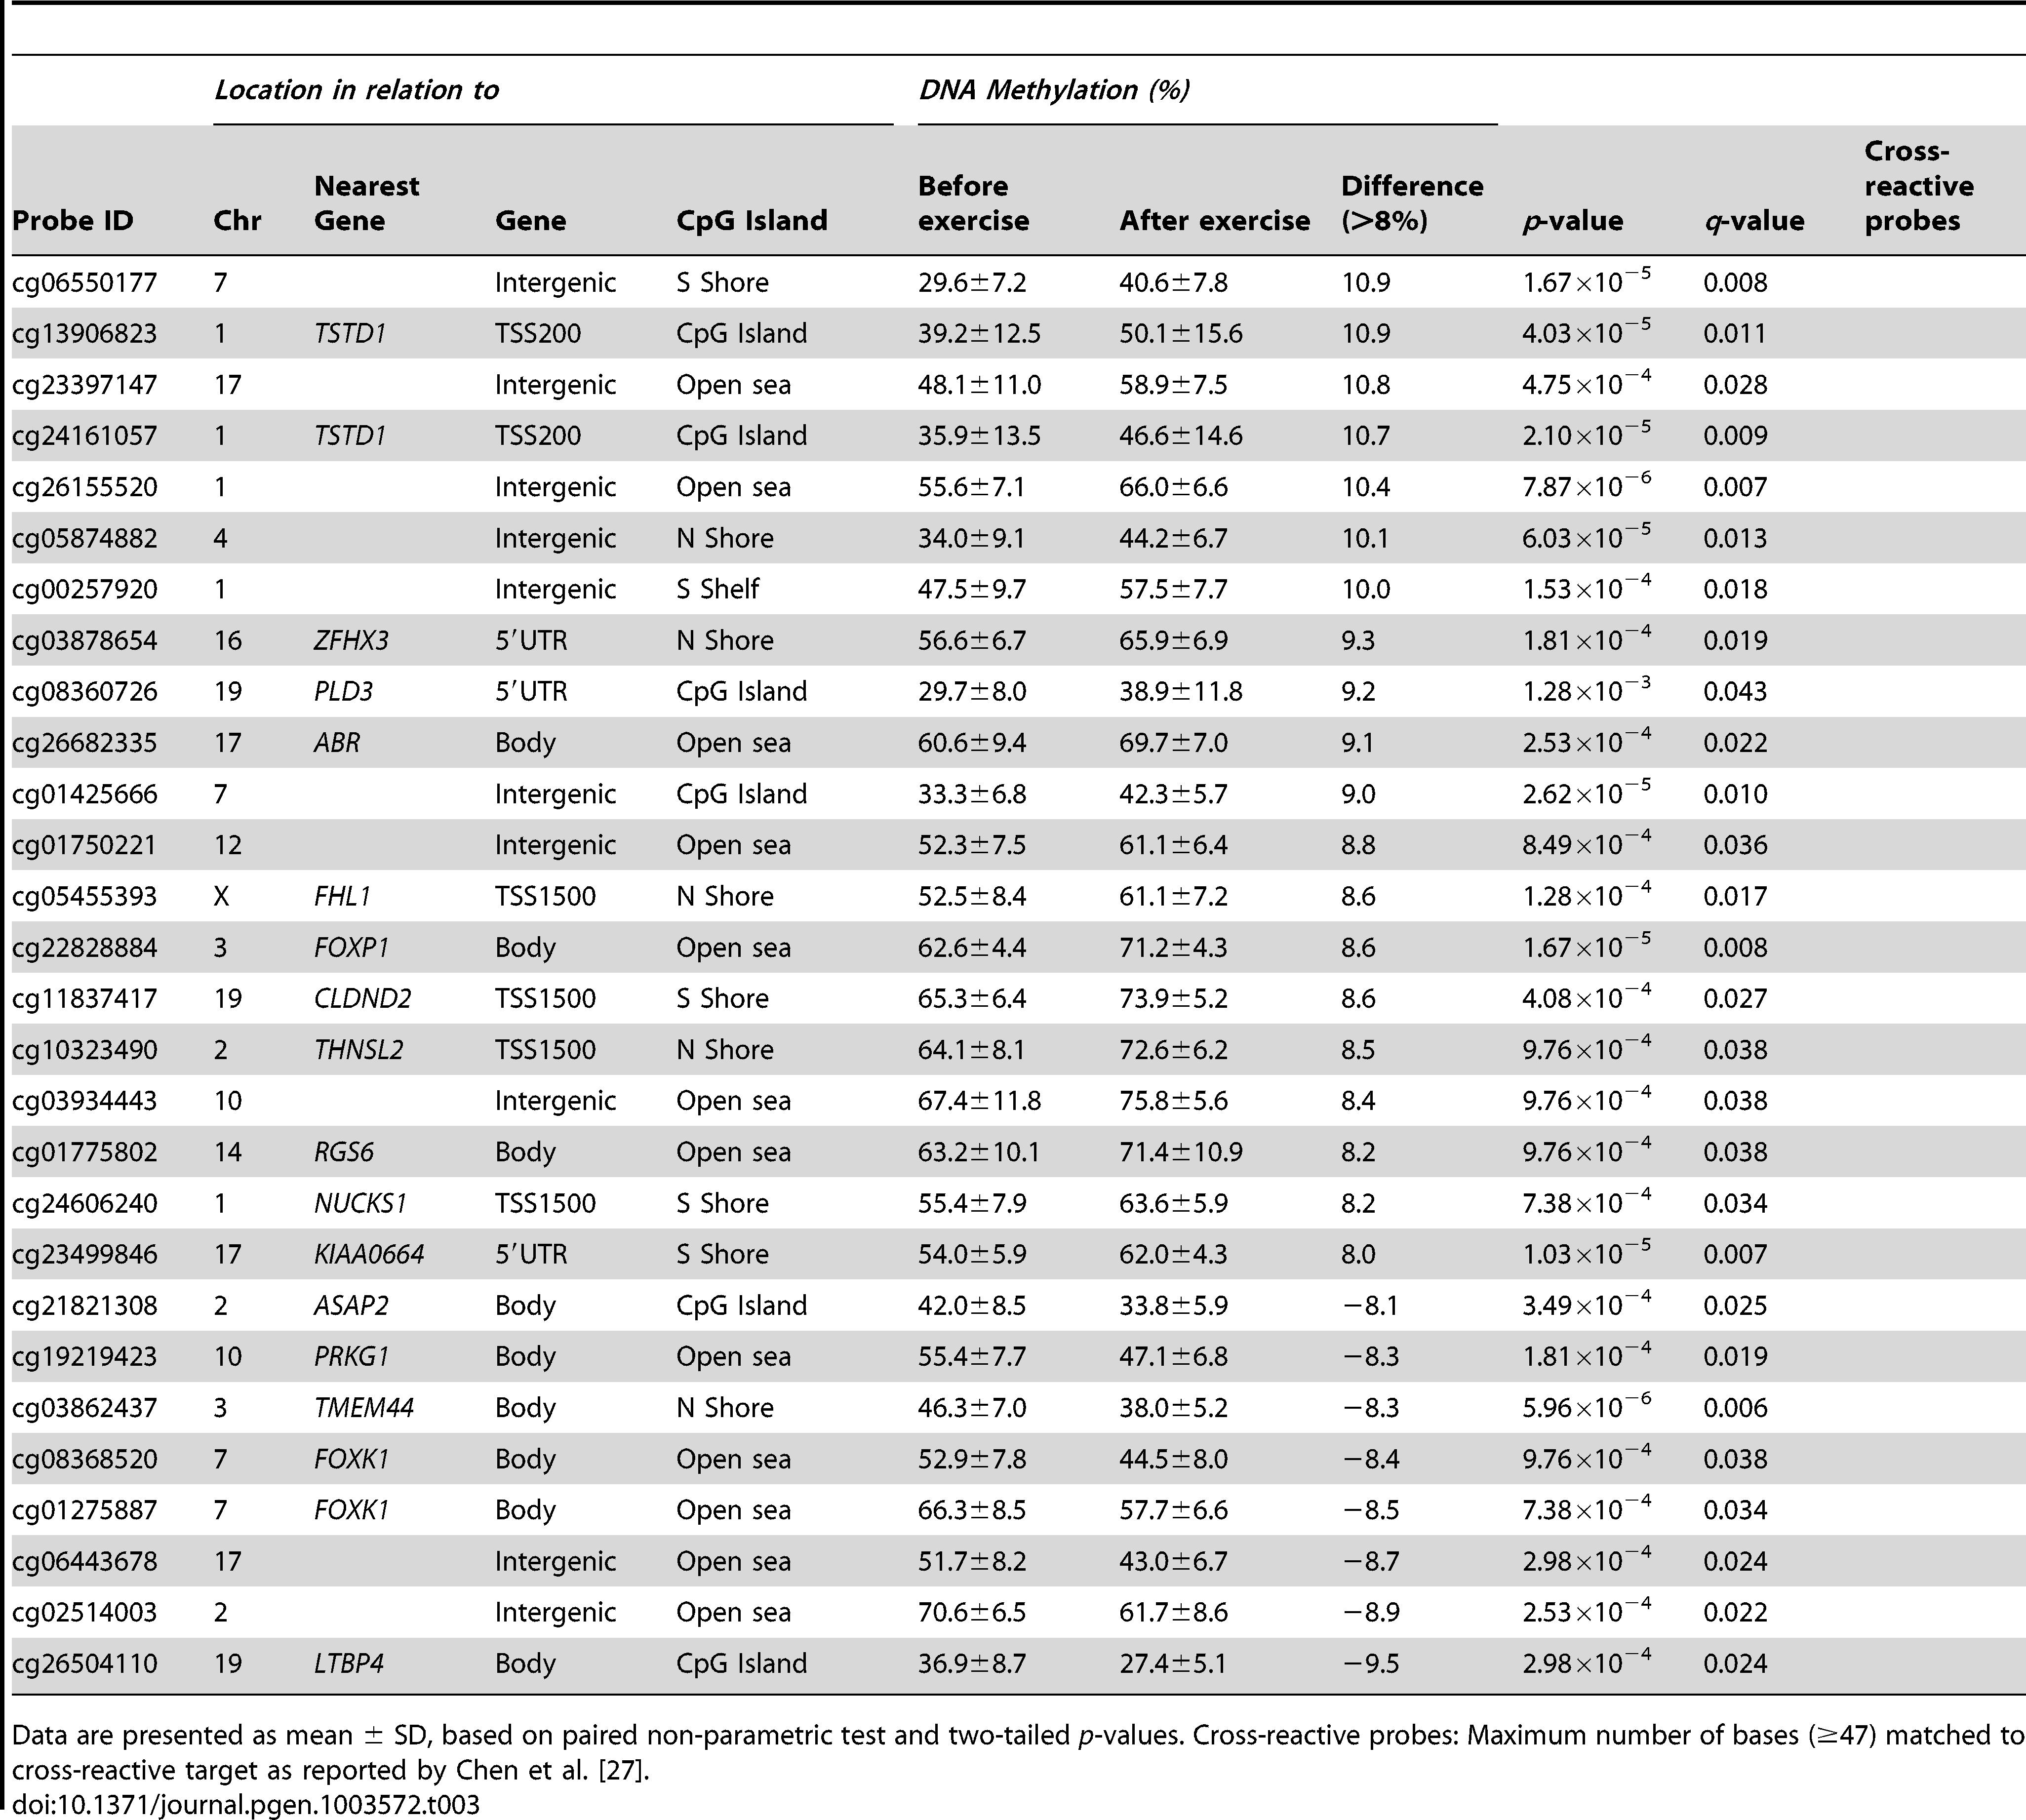 Changes in adipose tissue DNA methylation in response to a 6 months exercise intervention. Significant CpG sites (<i>q</i>&lt;0.05) with the biggest change in DNA methylation (&gt;8%).